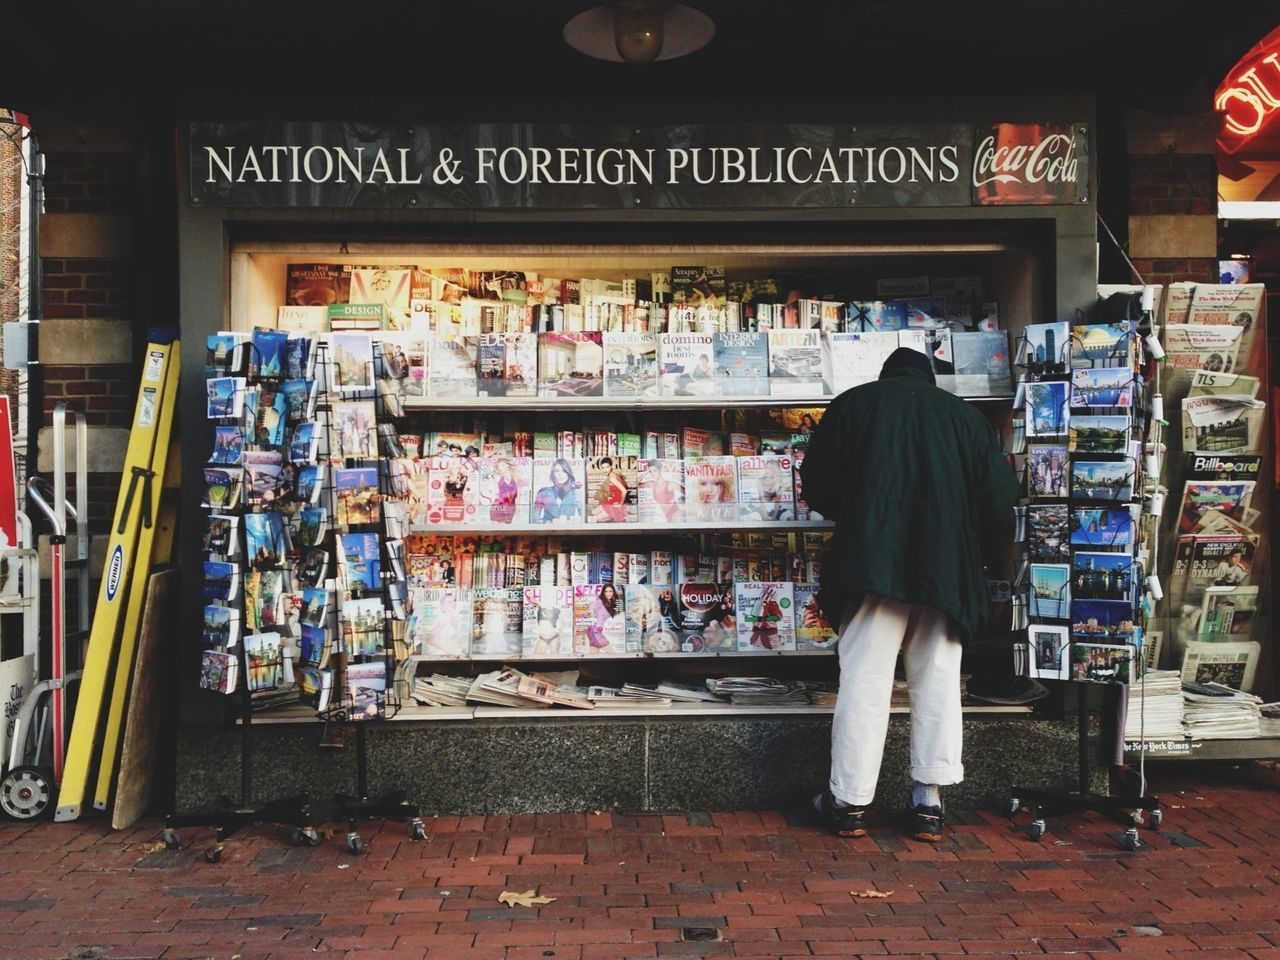 National News Streetphotography Vscocam The Street Photographer - 2014 EyeEm Awards